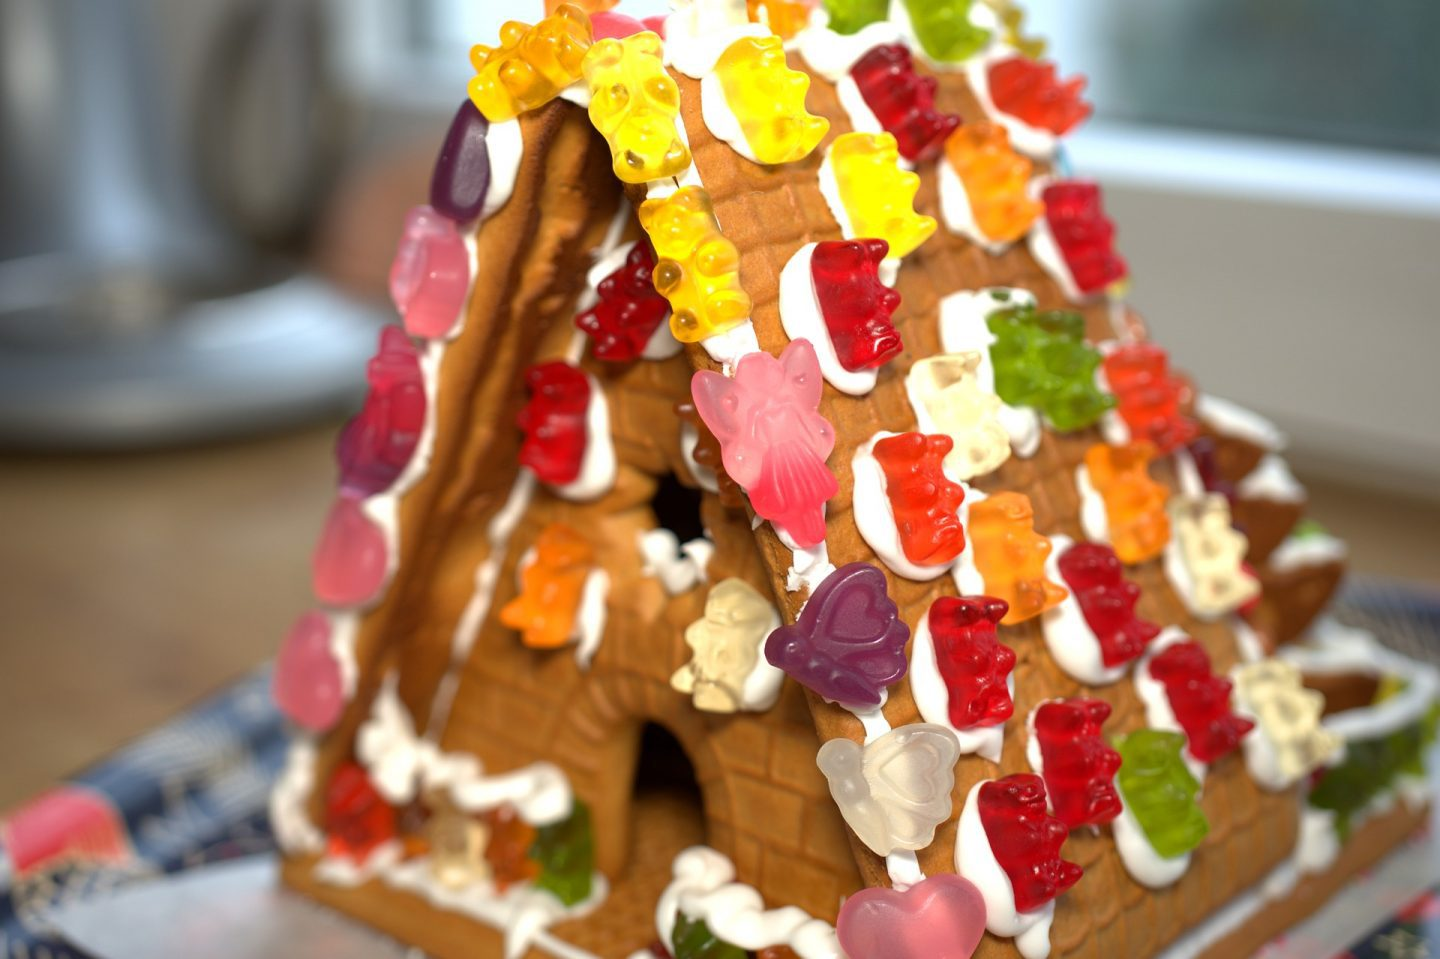 A gingerbread house covered in gummy sweets